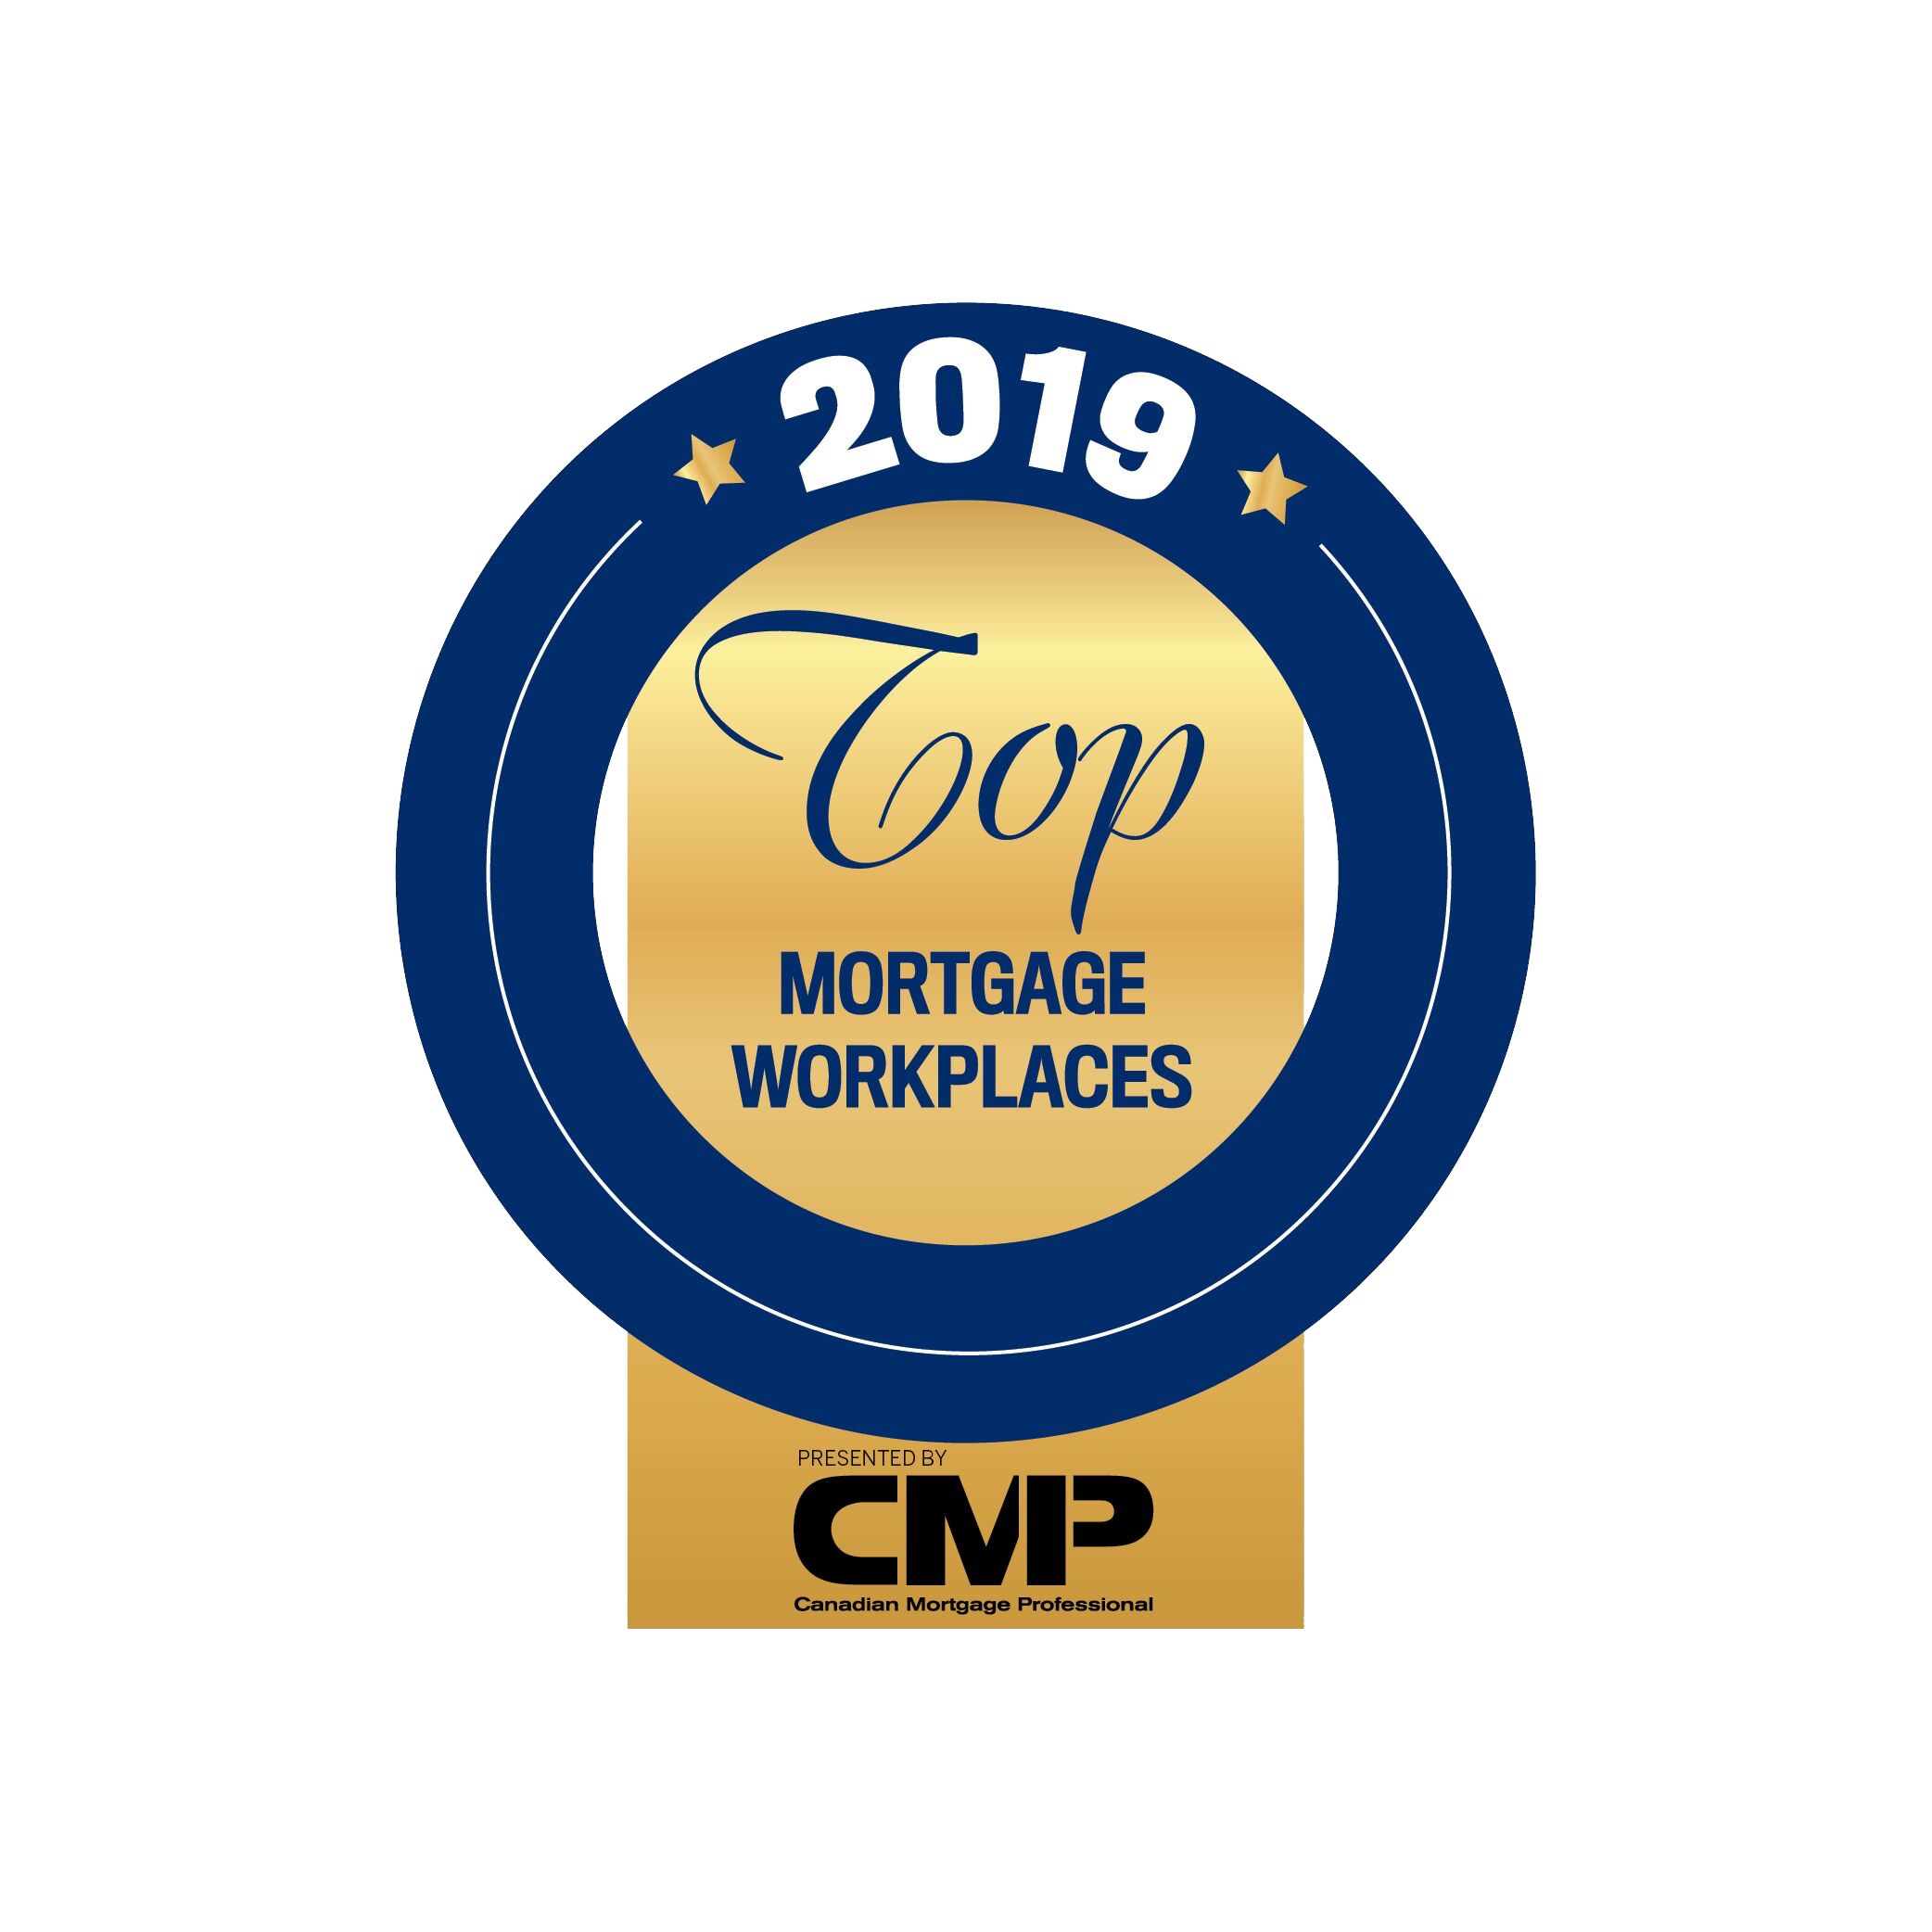 2019 Top Mortgage Workplace Award, Canadian Mortgage Professionals